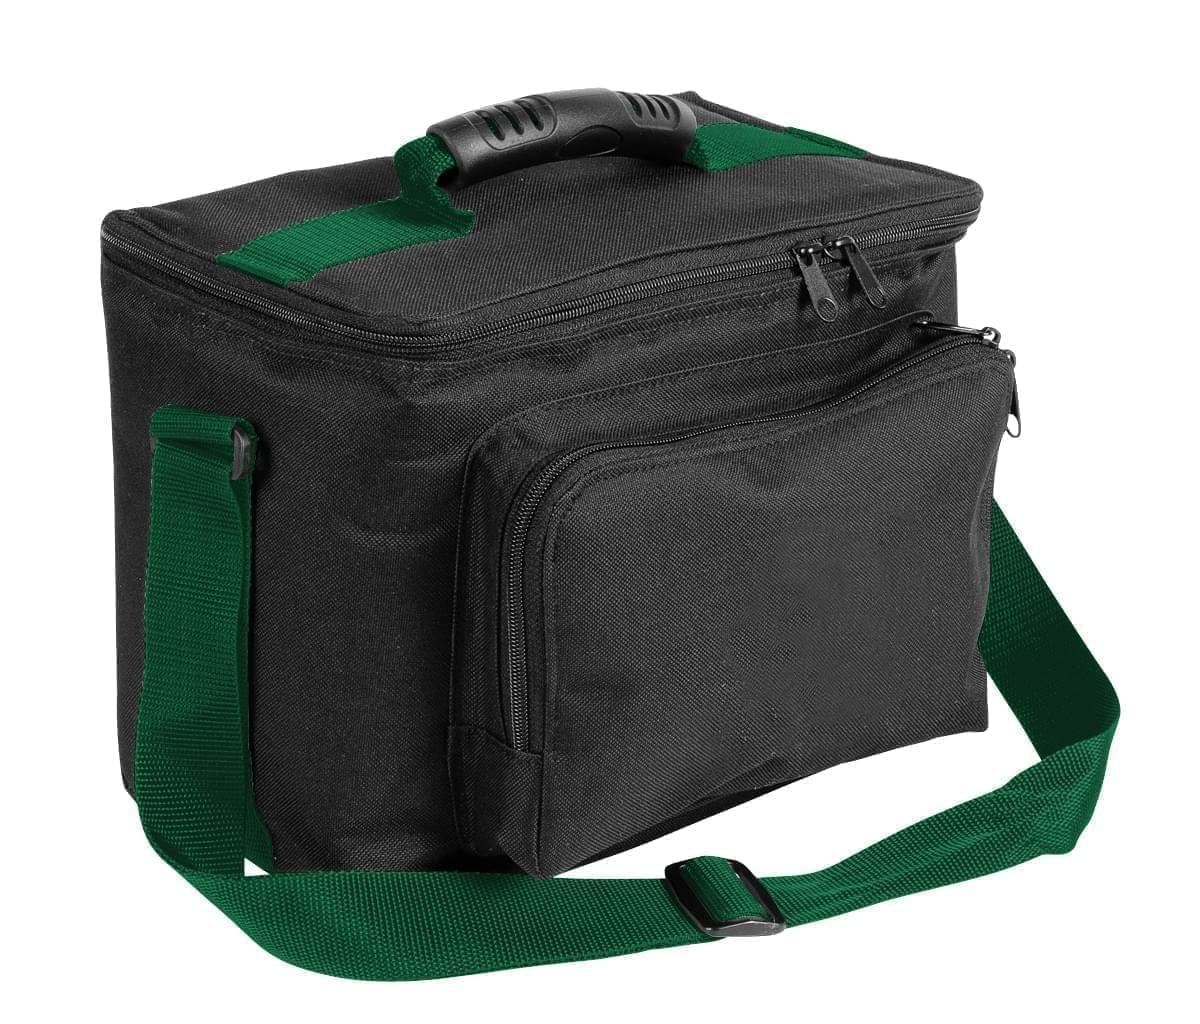 USA Made Nylon Poly Lunch Coolers, Black-Hunter Green, 11001161-AOV